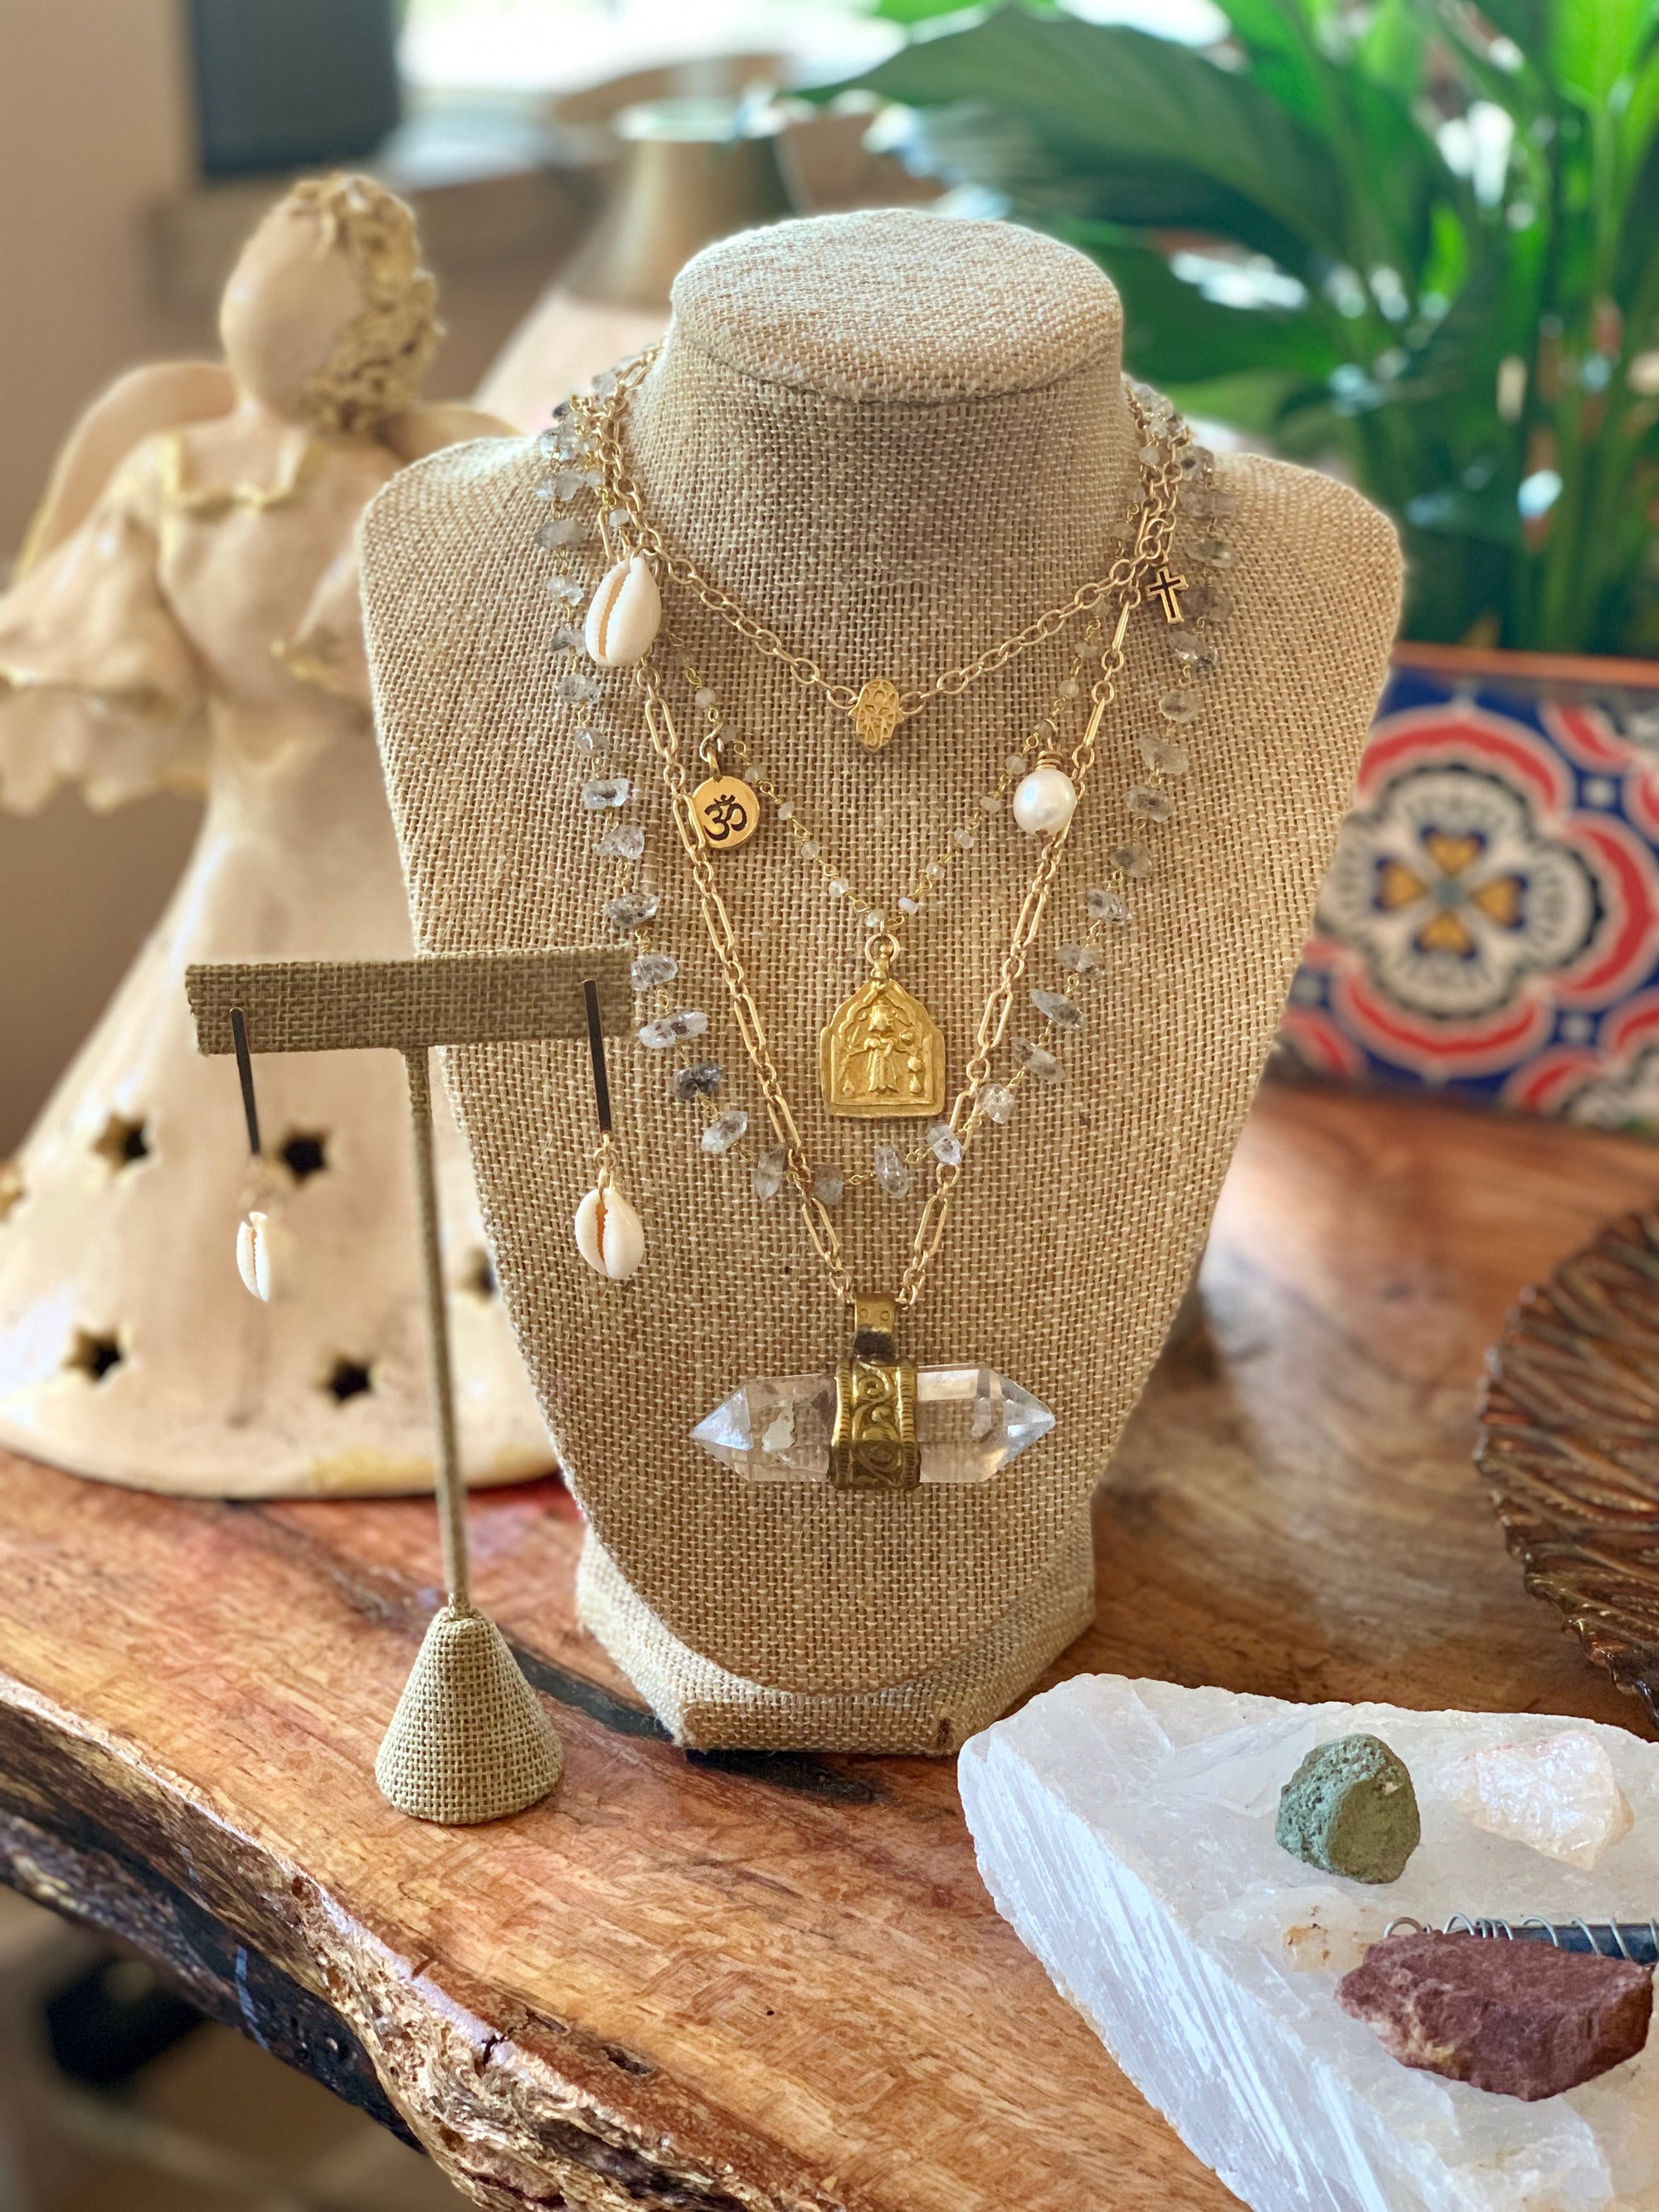 heather matjasic ohm jewelry shop gold silver shell earrings naples florida